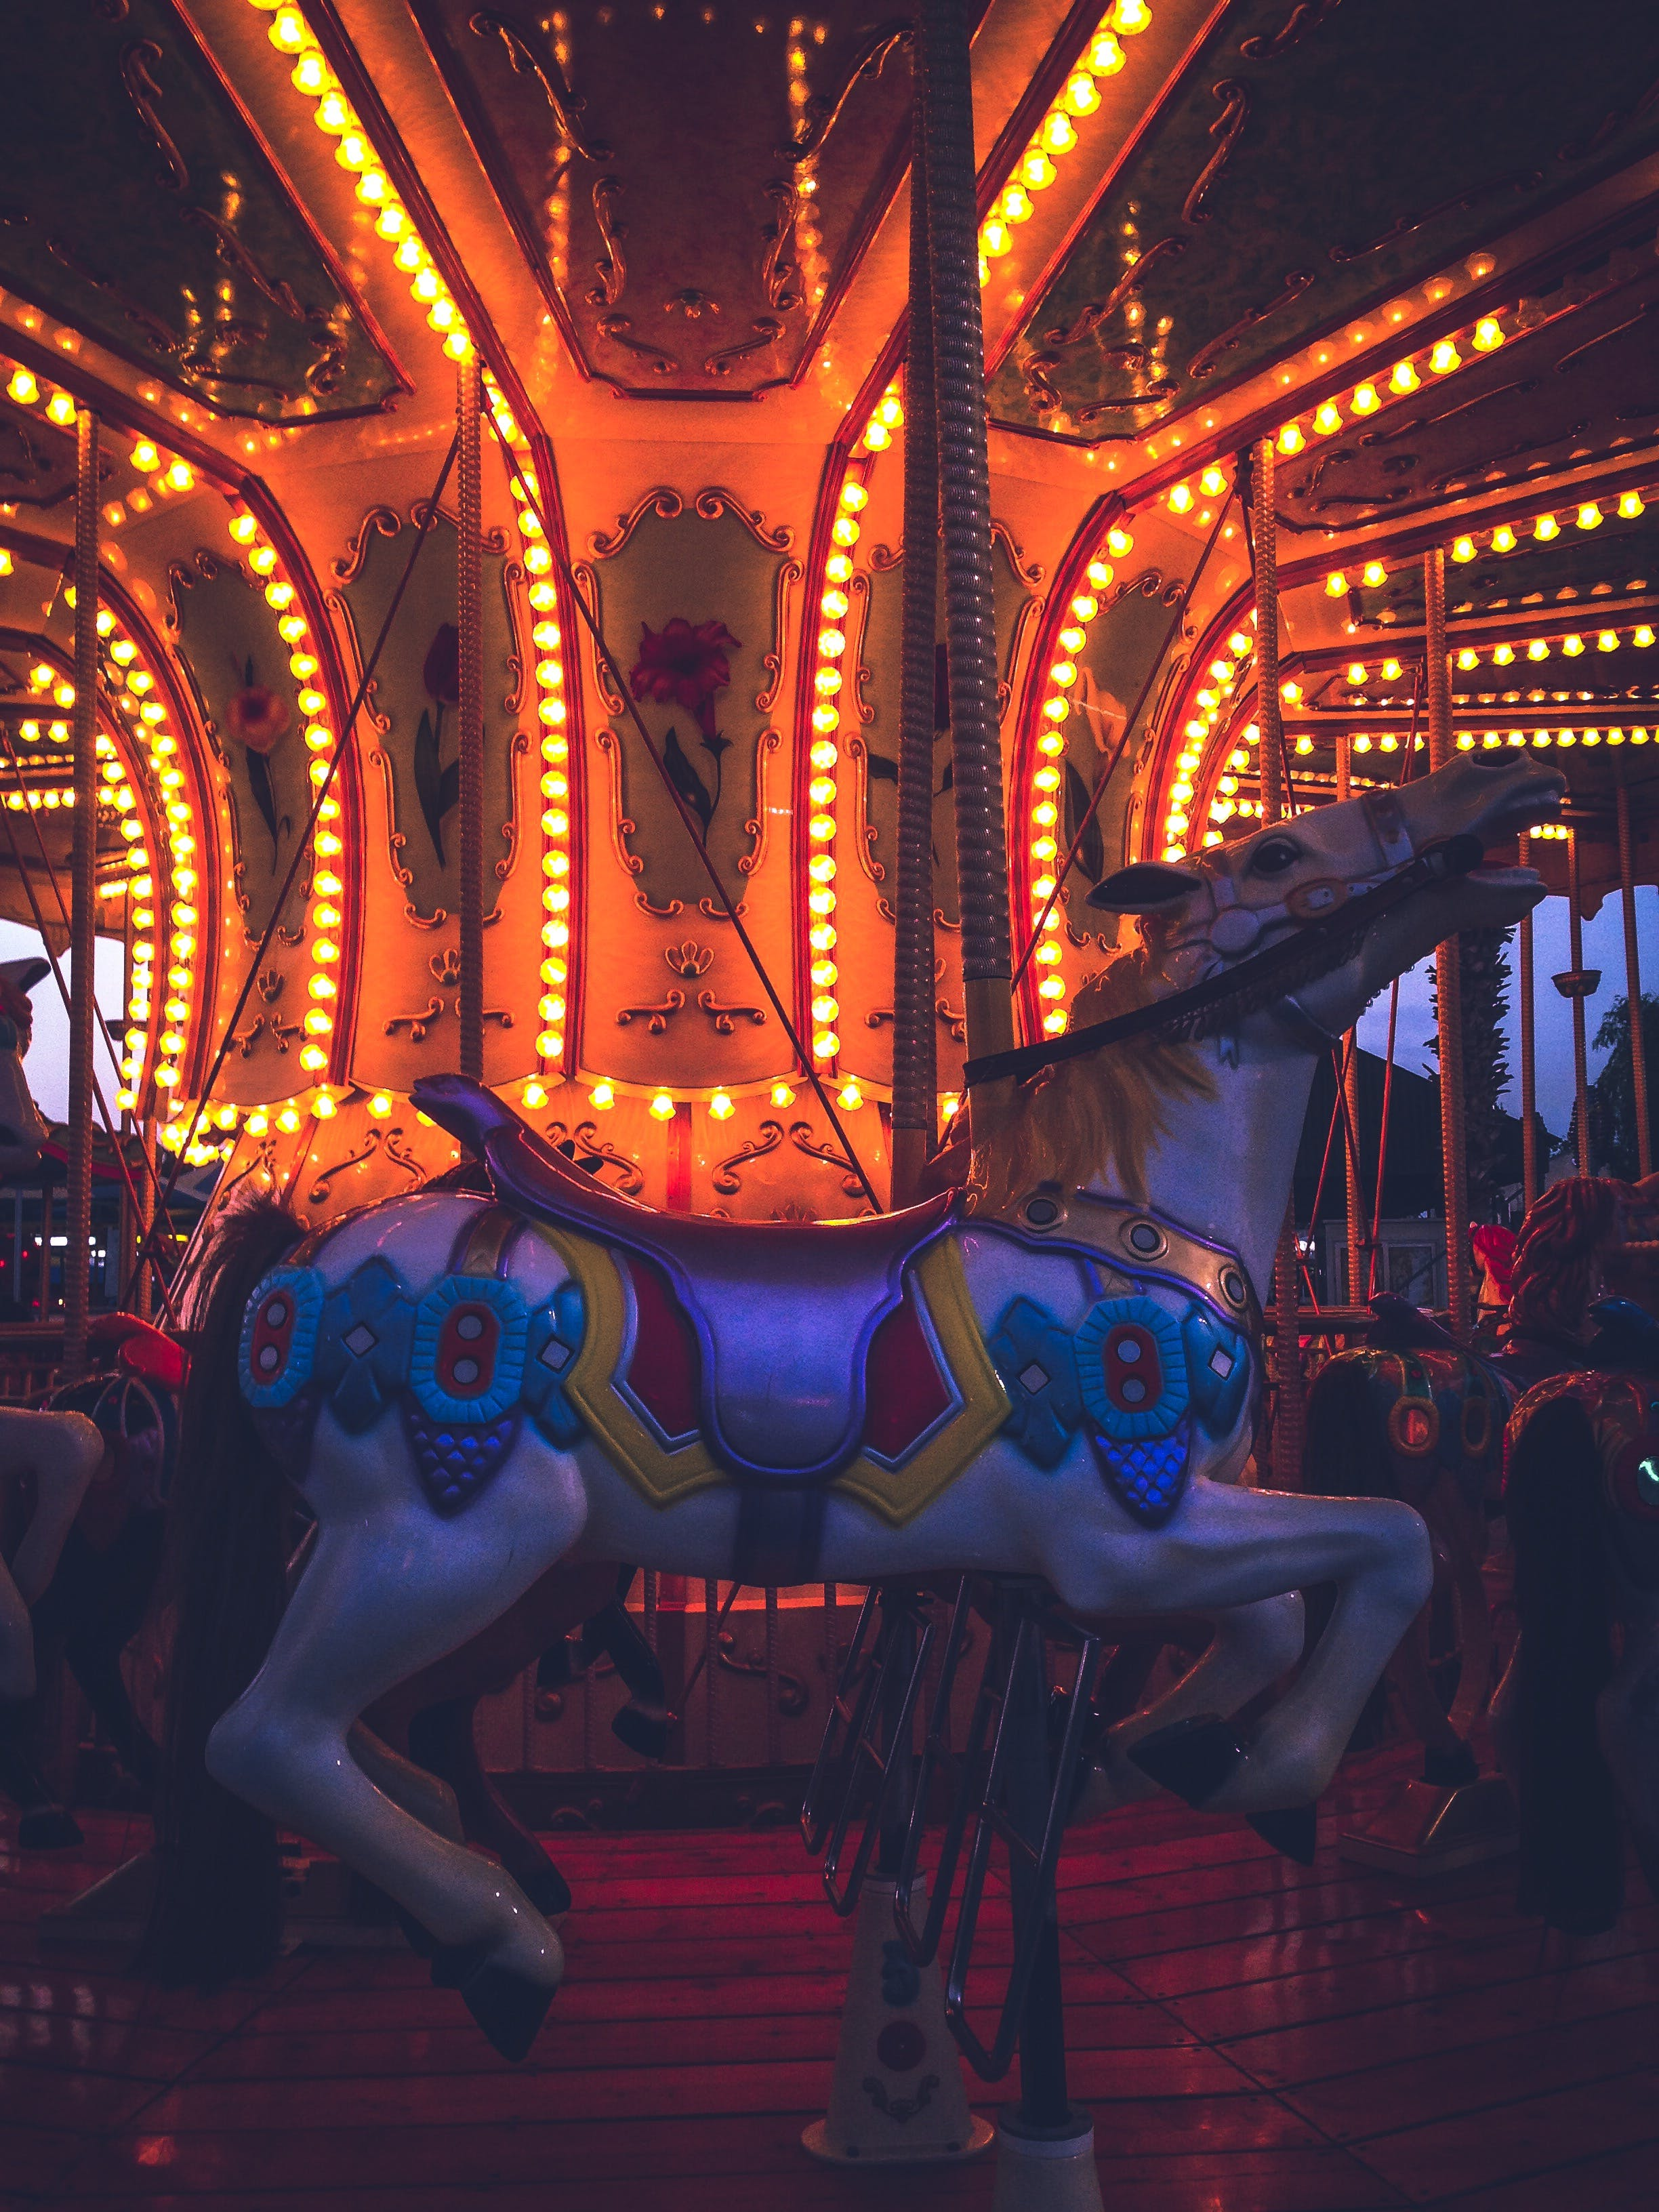 Free stock photo of amusement park, attraction, Bumper cars, carousel